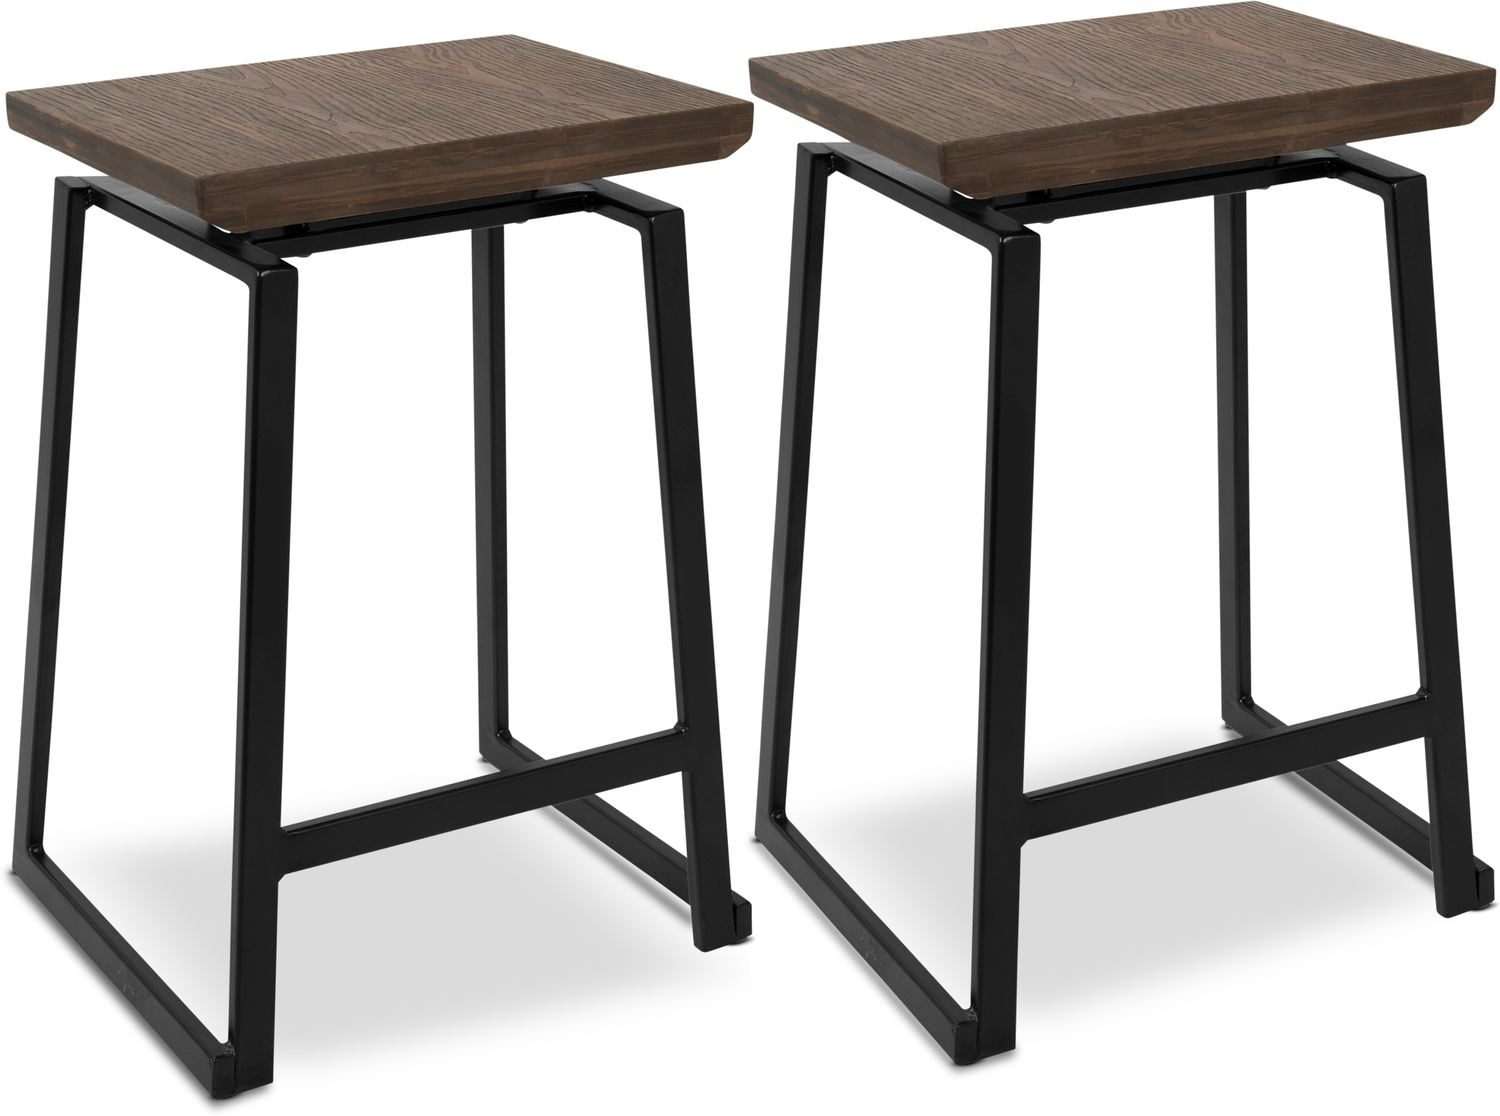 Dining Room Furniture - Ace Set of 2 Counter-Height Stools